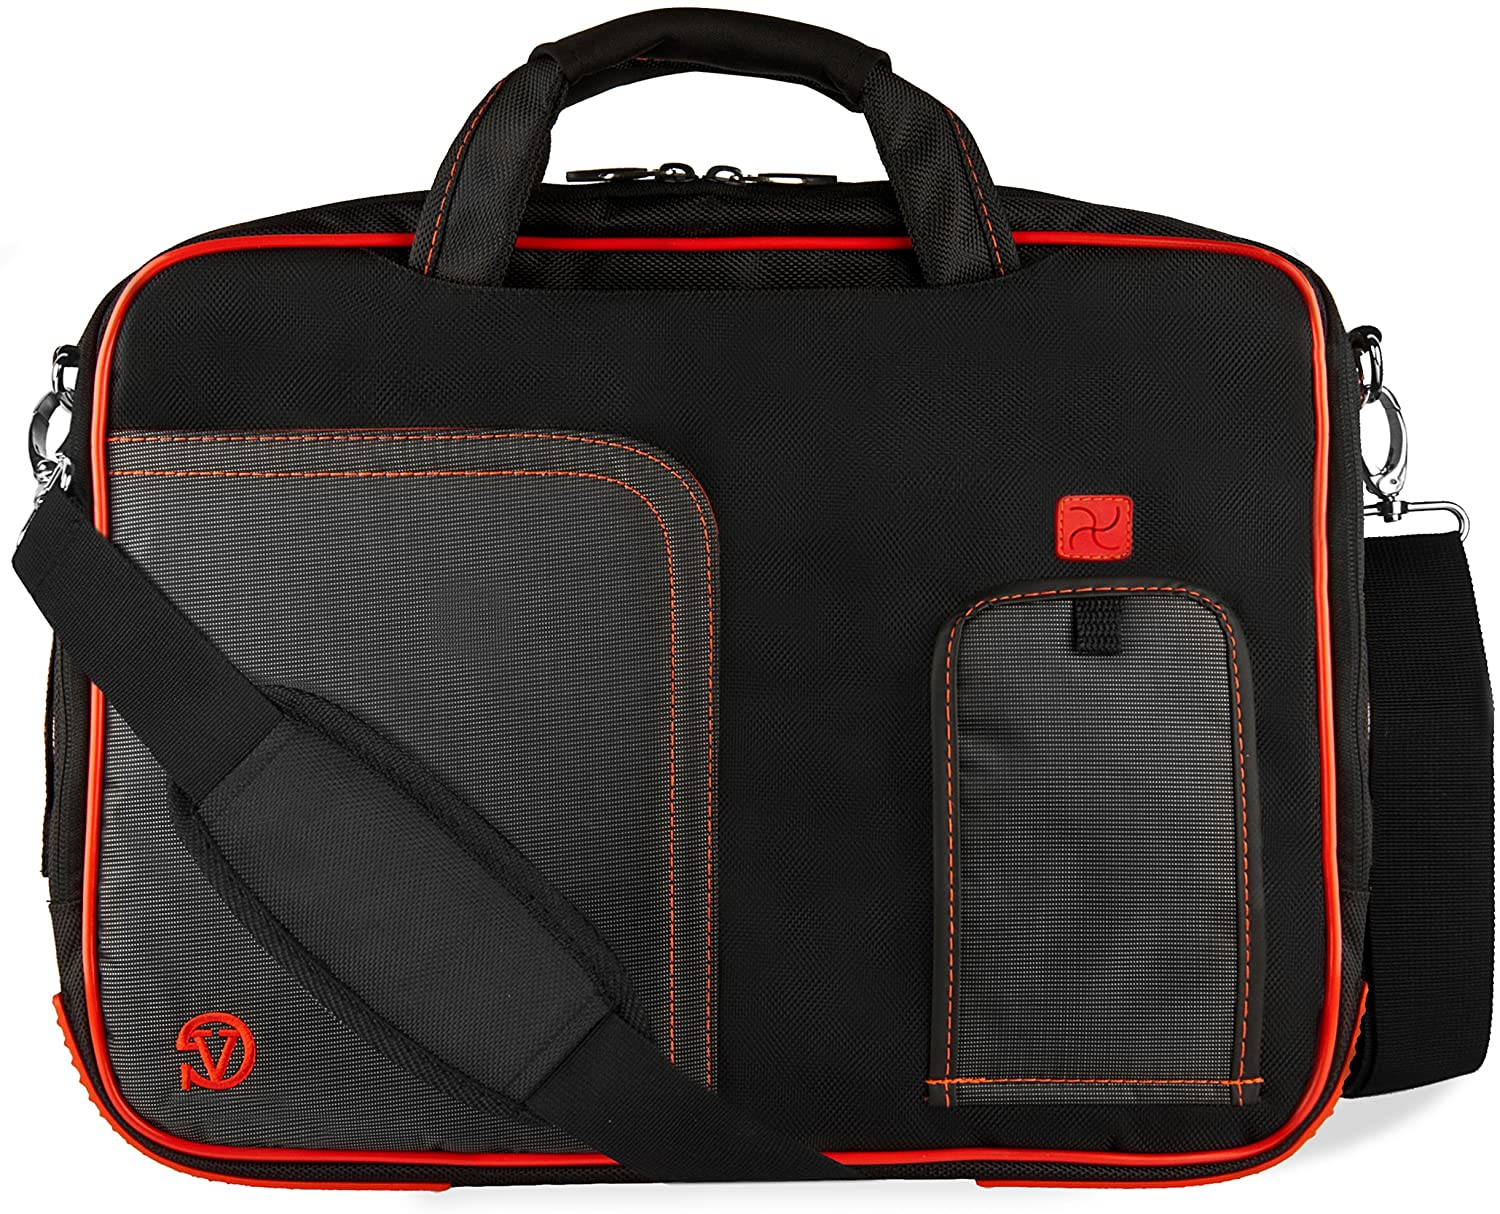 Red 17.3 inch Laptop Messenger Bag for Razer Blade Pro, AOC 17 inch Portable Monitor, Samsung Galaxy View2